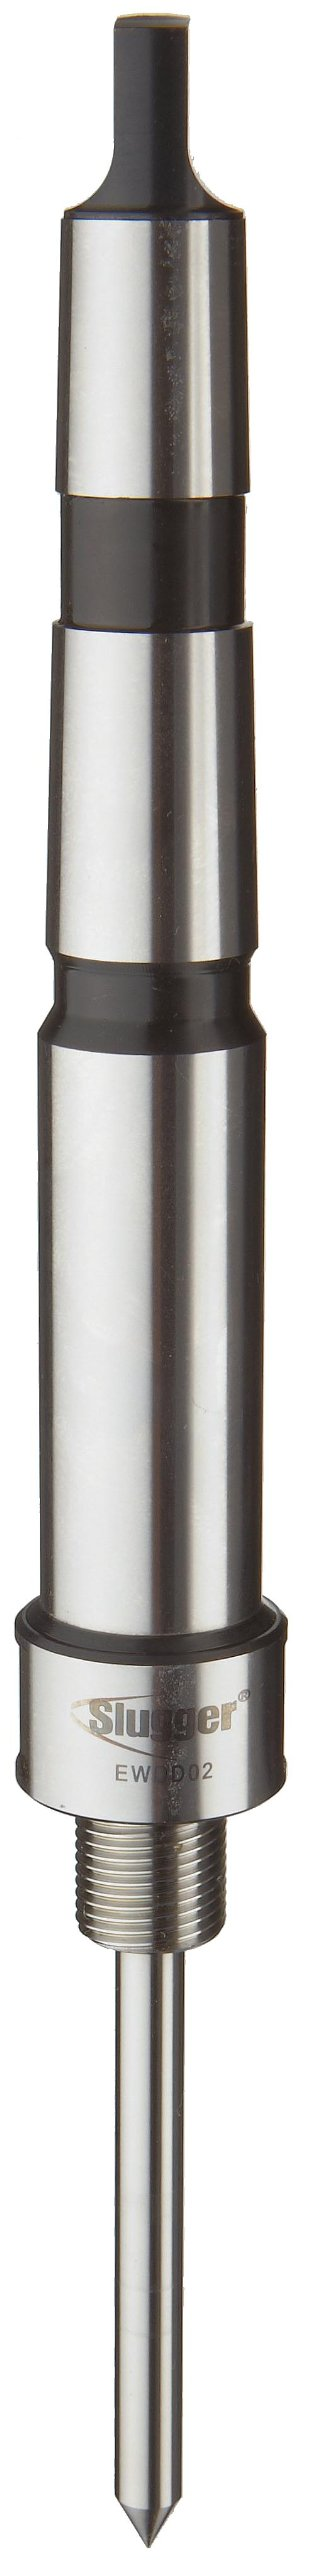 Jancy Slugger EWDD02 3 Morse Taper Industrial Arbor With Coolant Inducer, For M18 X 1.5 Threaded Bore Slugger Carbide Tipped Cutters